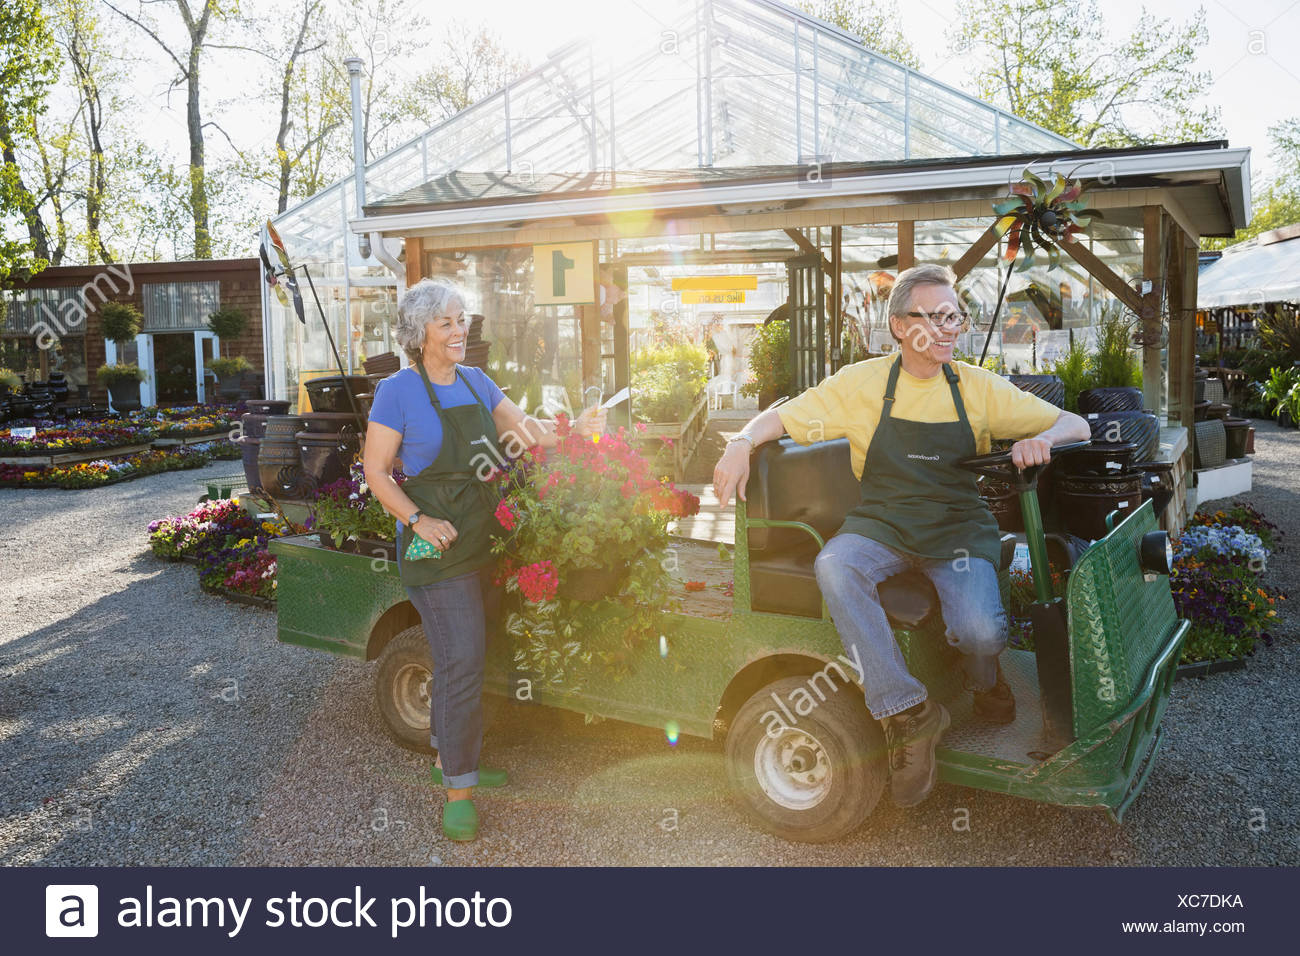 Workers with hanging flower basket in cart outside greenhouse - Stock Image